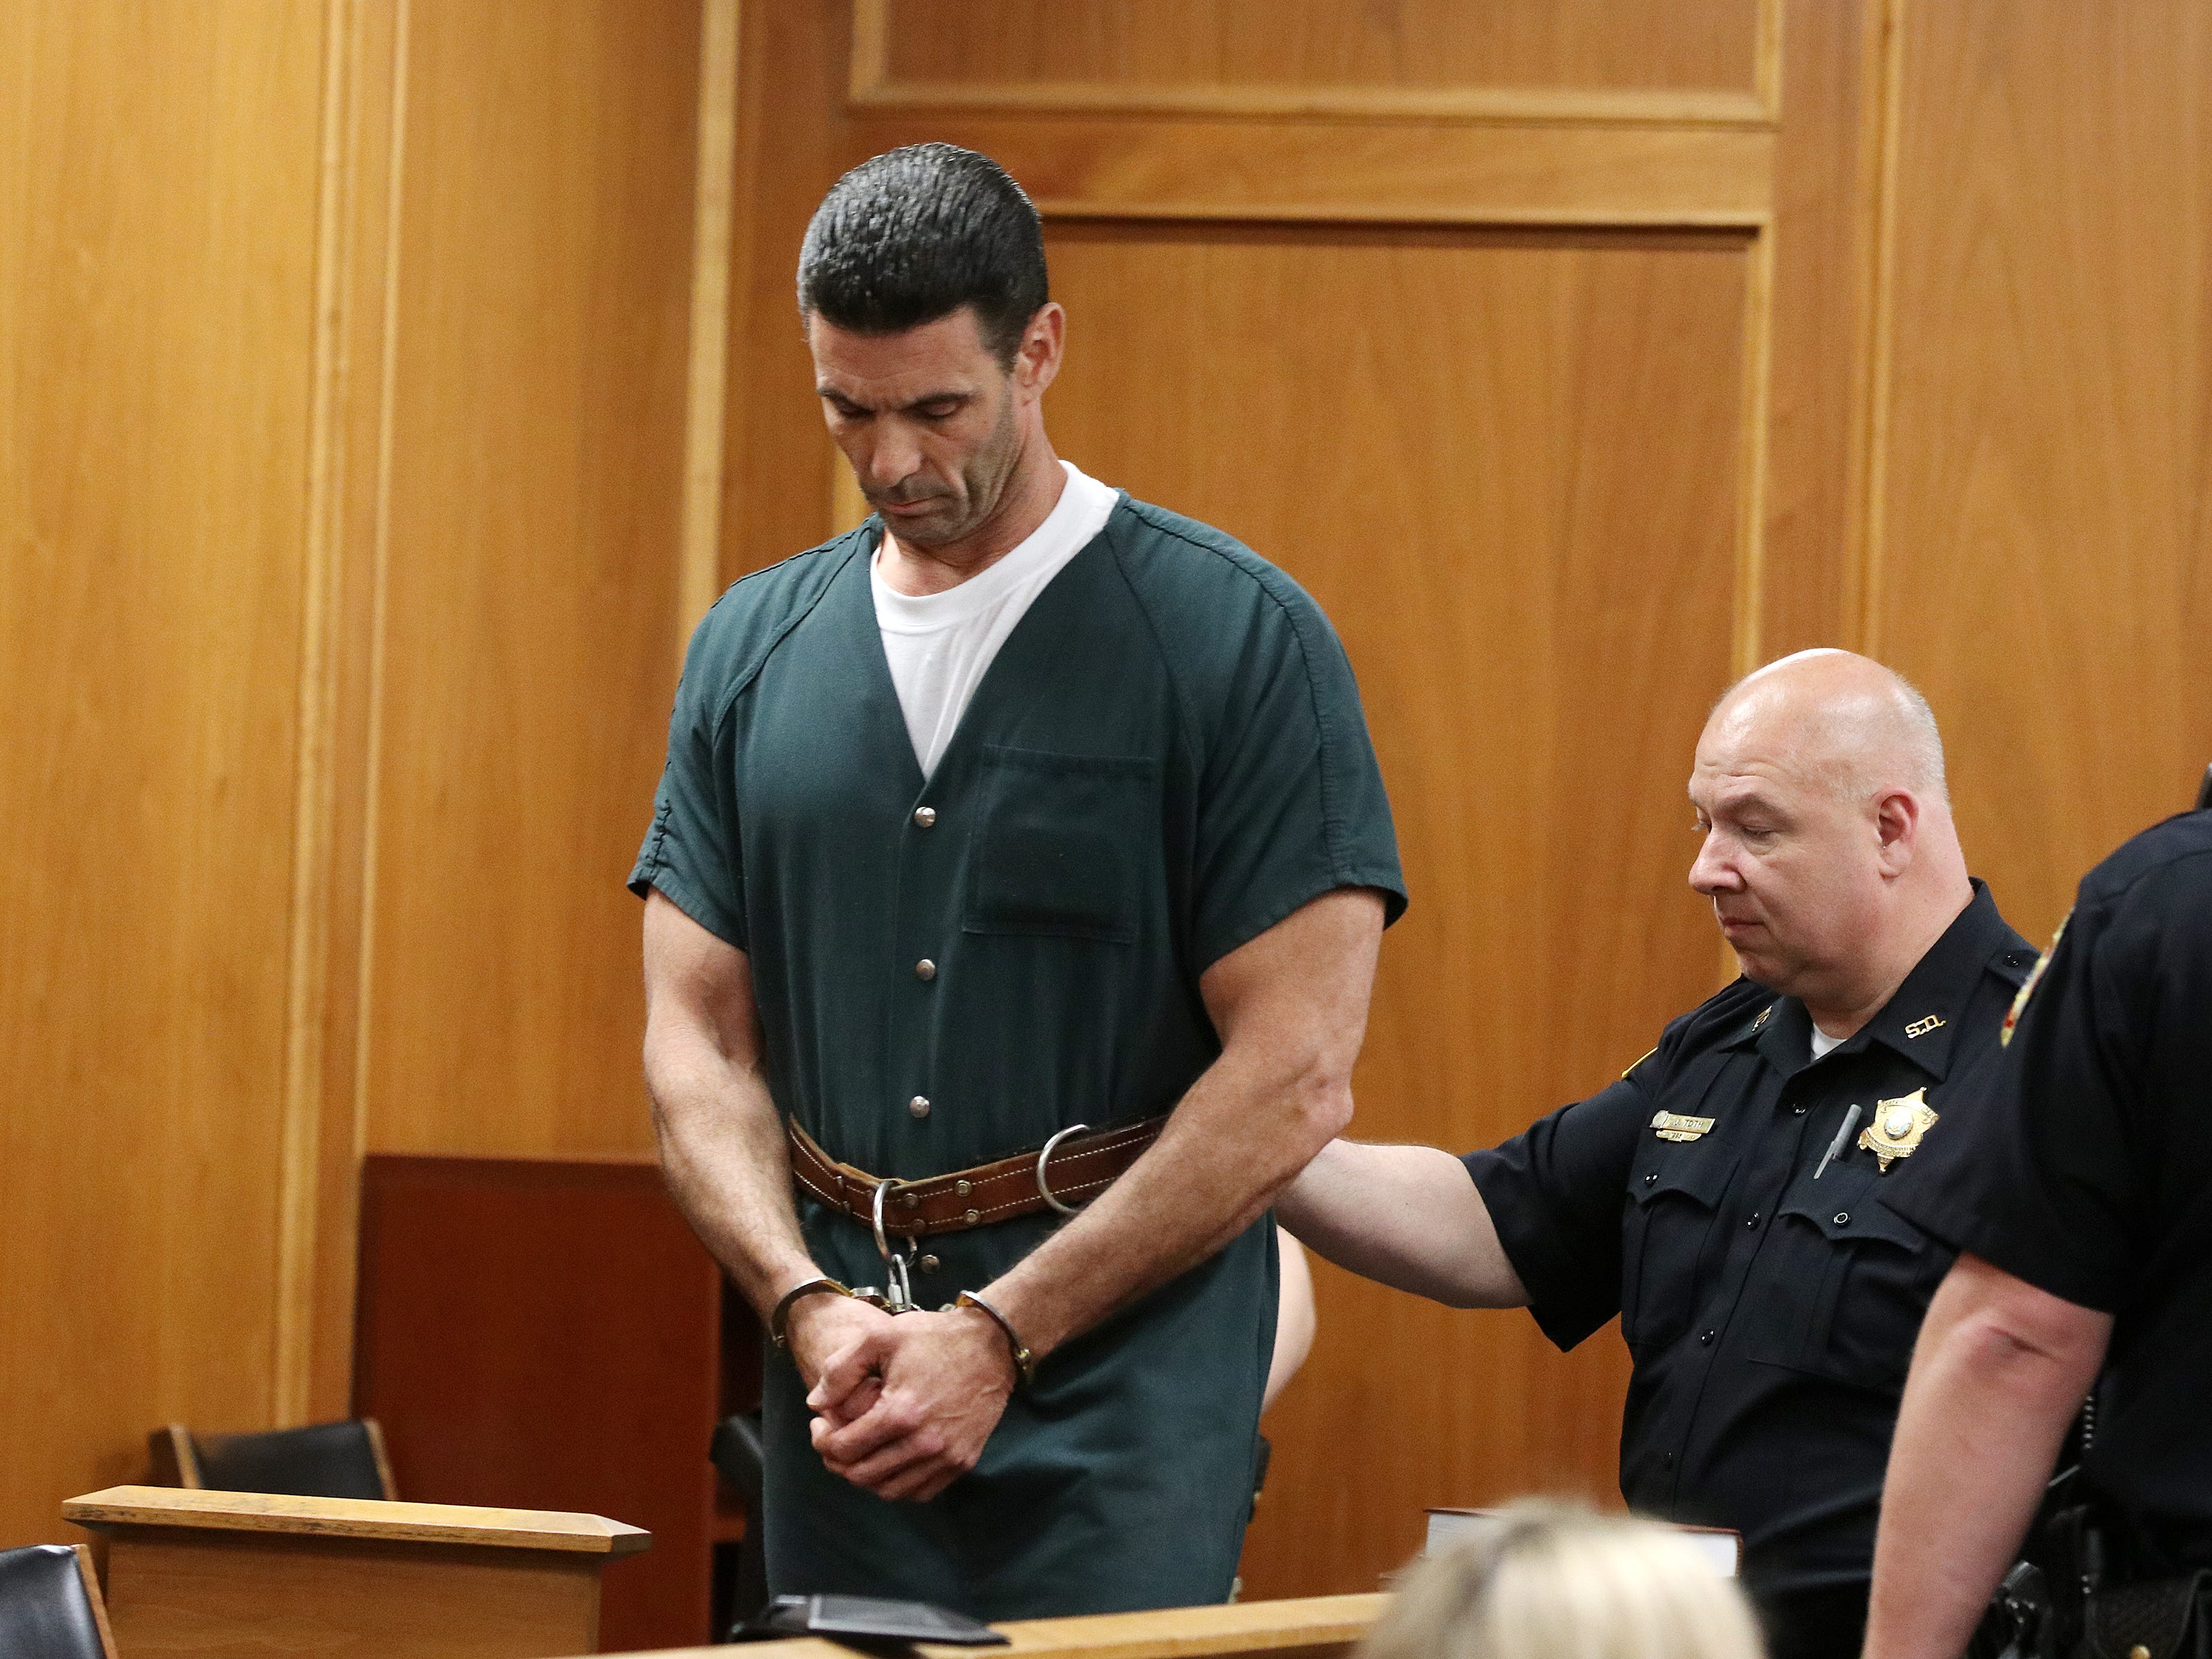 """James Mainello, who is charged in the home-invasion robbery of former """"Real Housewives of New Jersey'' star Dina Manzo and her then-fiance at their Holmdel townhome, appears for his detention hearing before Judge James McGann at the Monmouth County Courthouse in Freehold, NJ Monday May 14, 2019."""